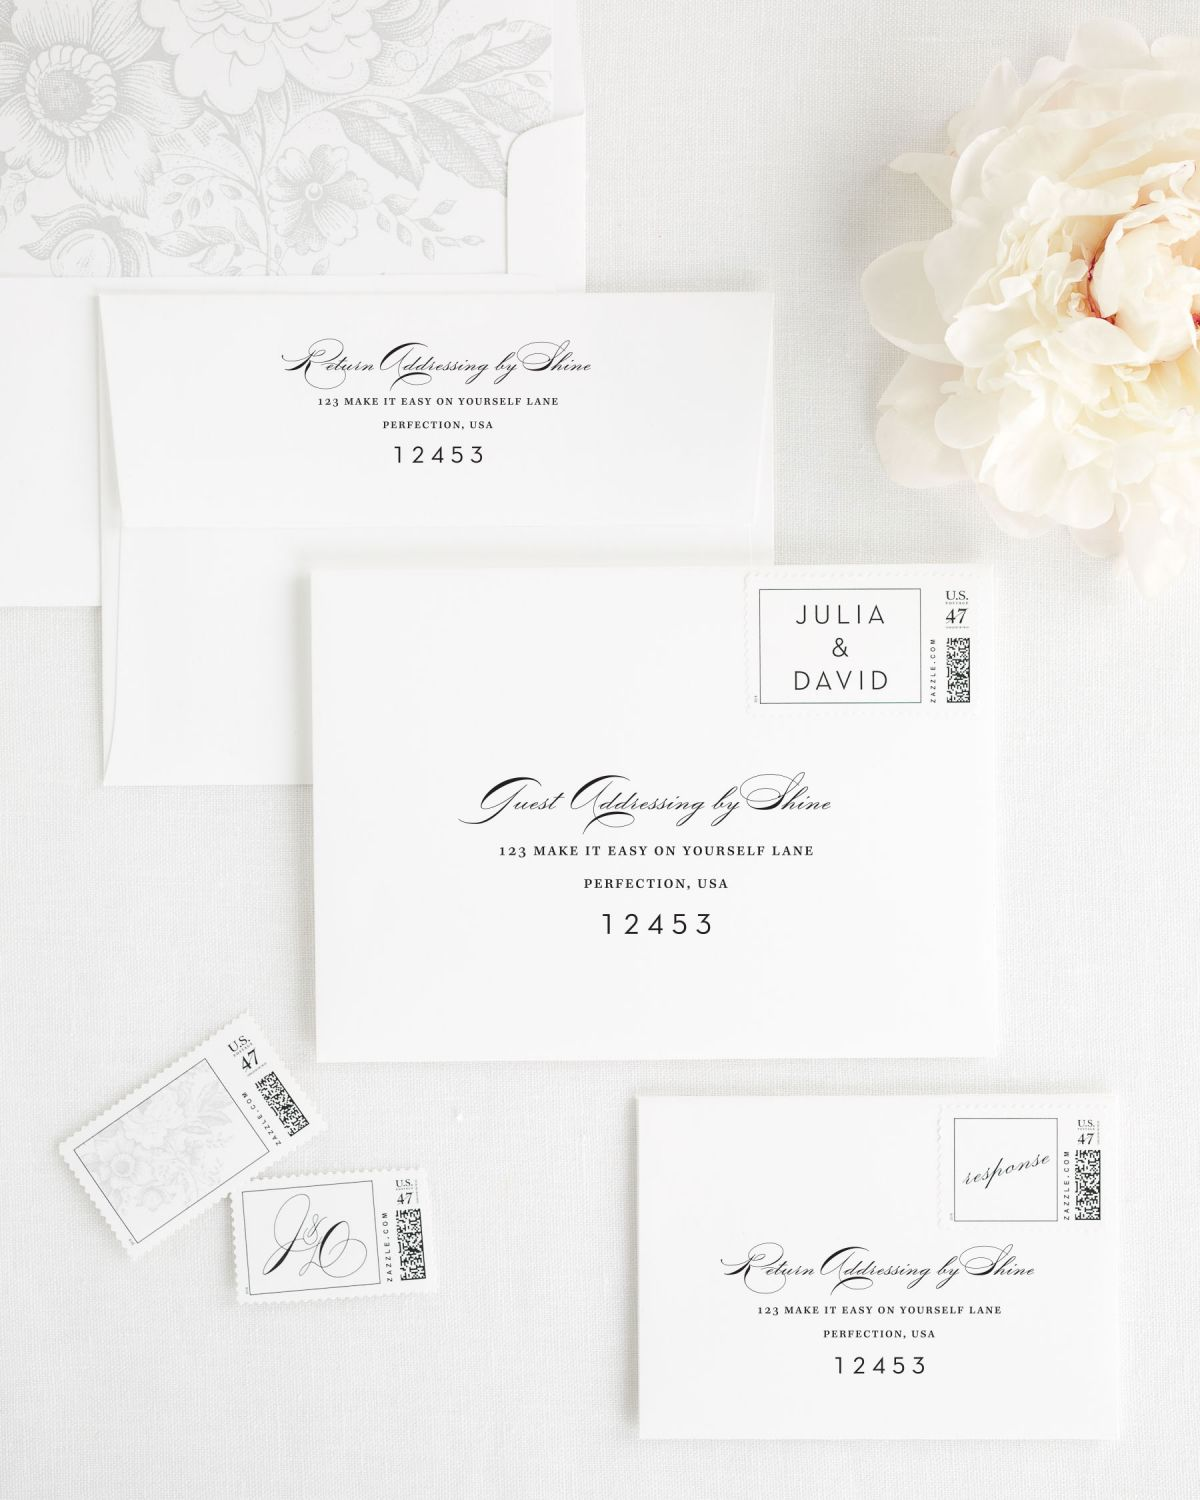 Wedding Invitation Envelopes with Personalized Postage Stamps in Black and White